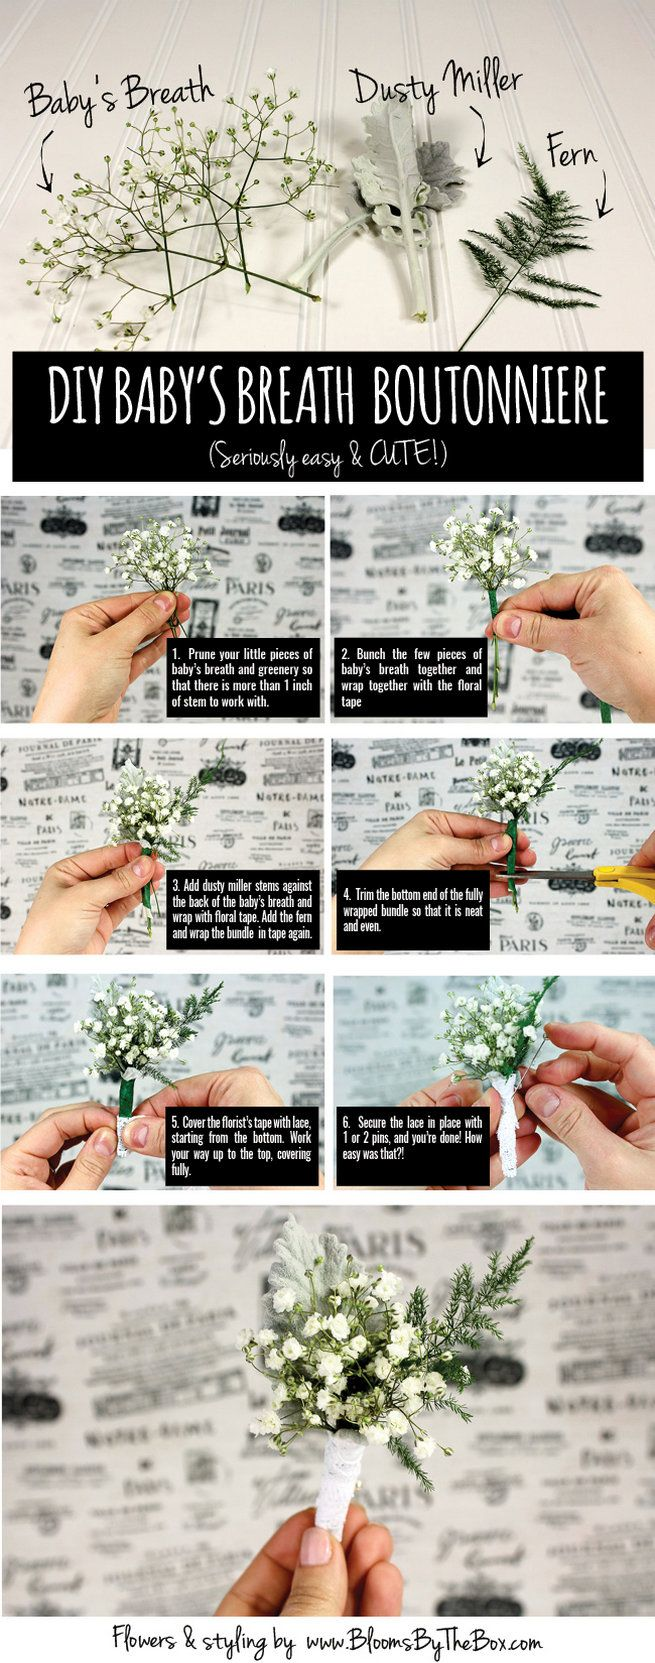 Oh baby's breath, how we love you so. This easy tutorial for making a DIY Baby's Breath Boutonniere is quick and CUTE! These pretty little guys are so simple to make and they add a fun twist on the traditional boutonniere. We love that you can easily order the flowers needed for this tutorial online and have them delivered straight to your door to create for your wedding day. YAY! get the full step by step here: http://www.confettidaydreams.com/easy-diy-babys-breath-boutonniere/